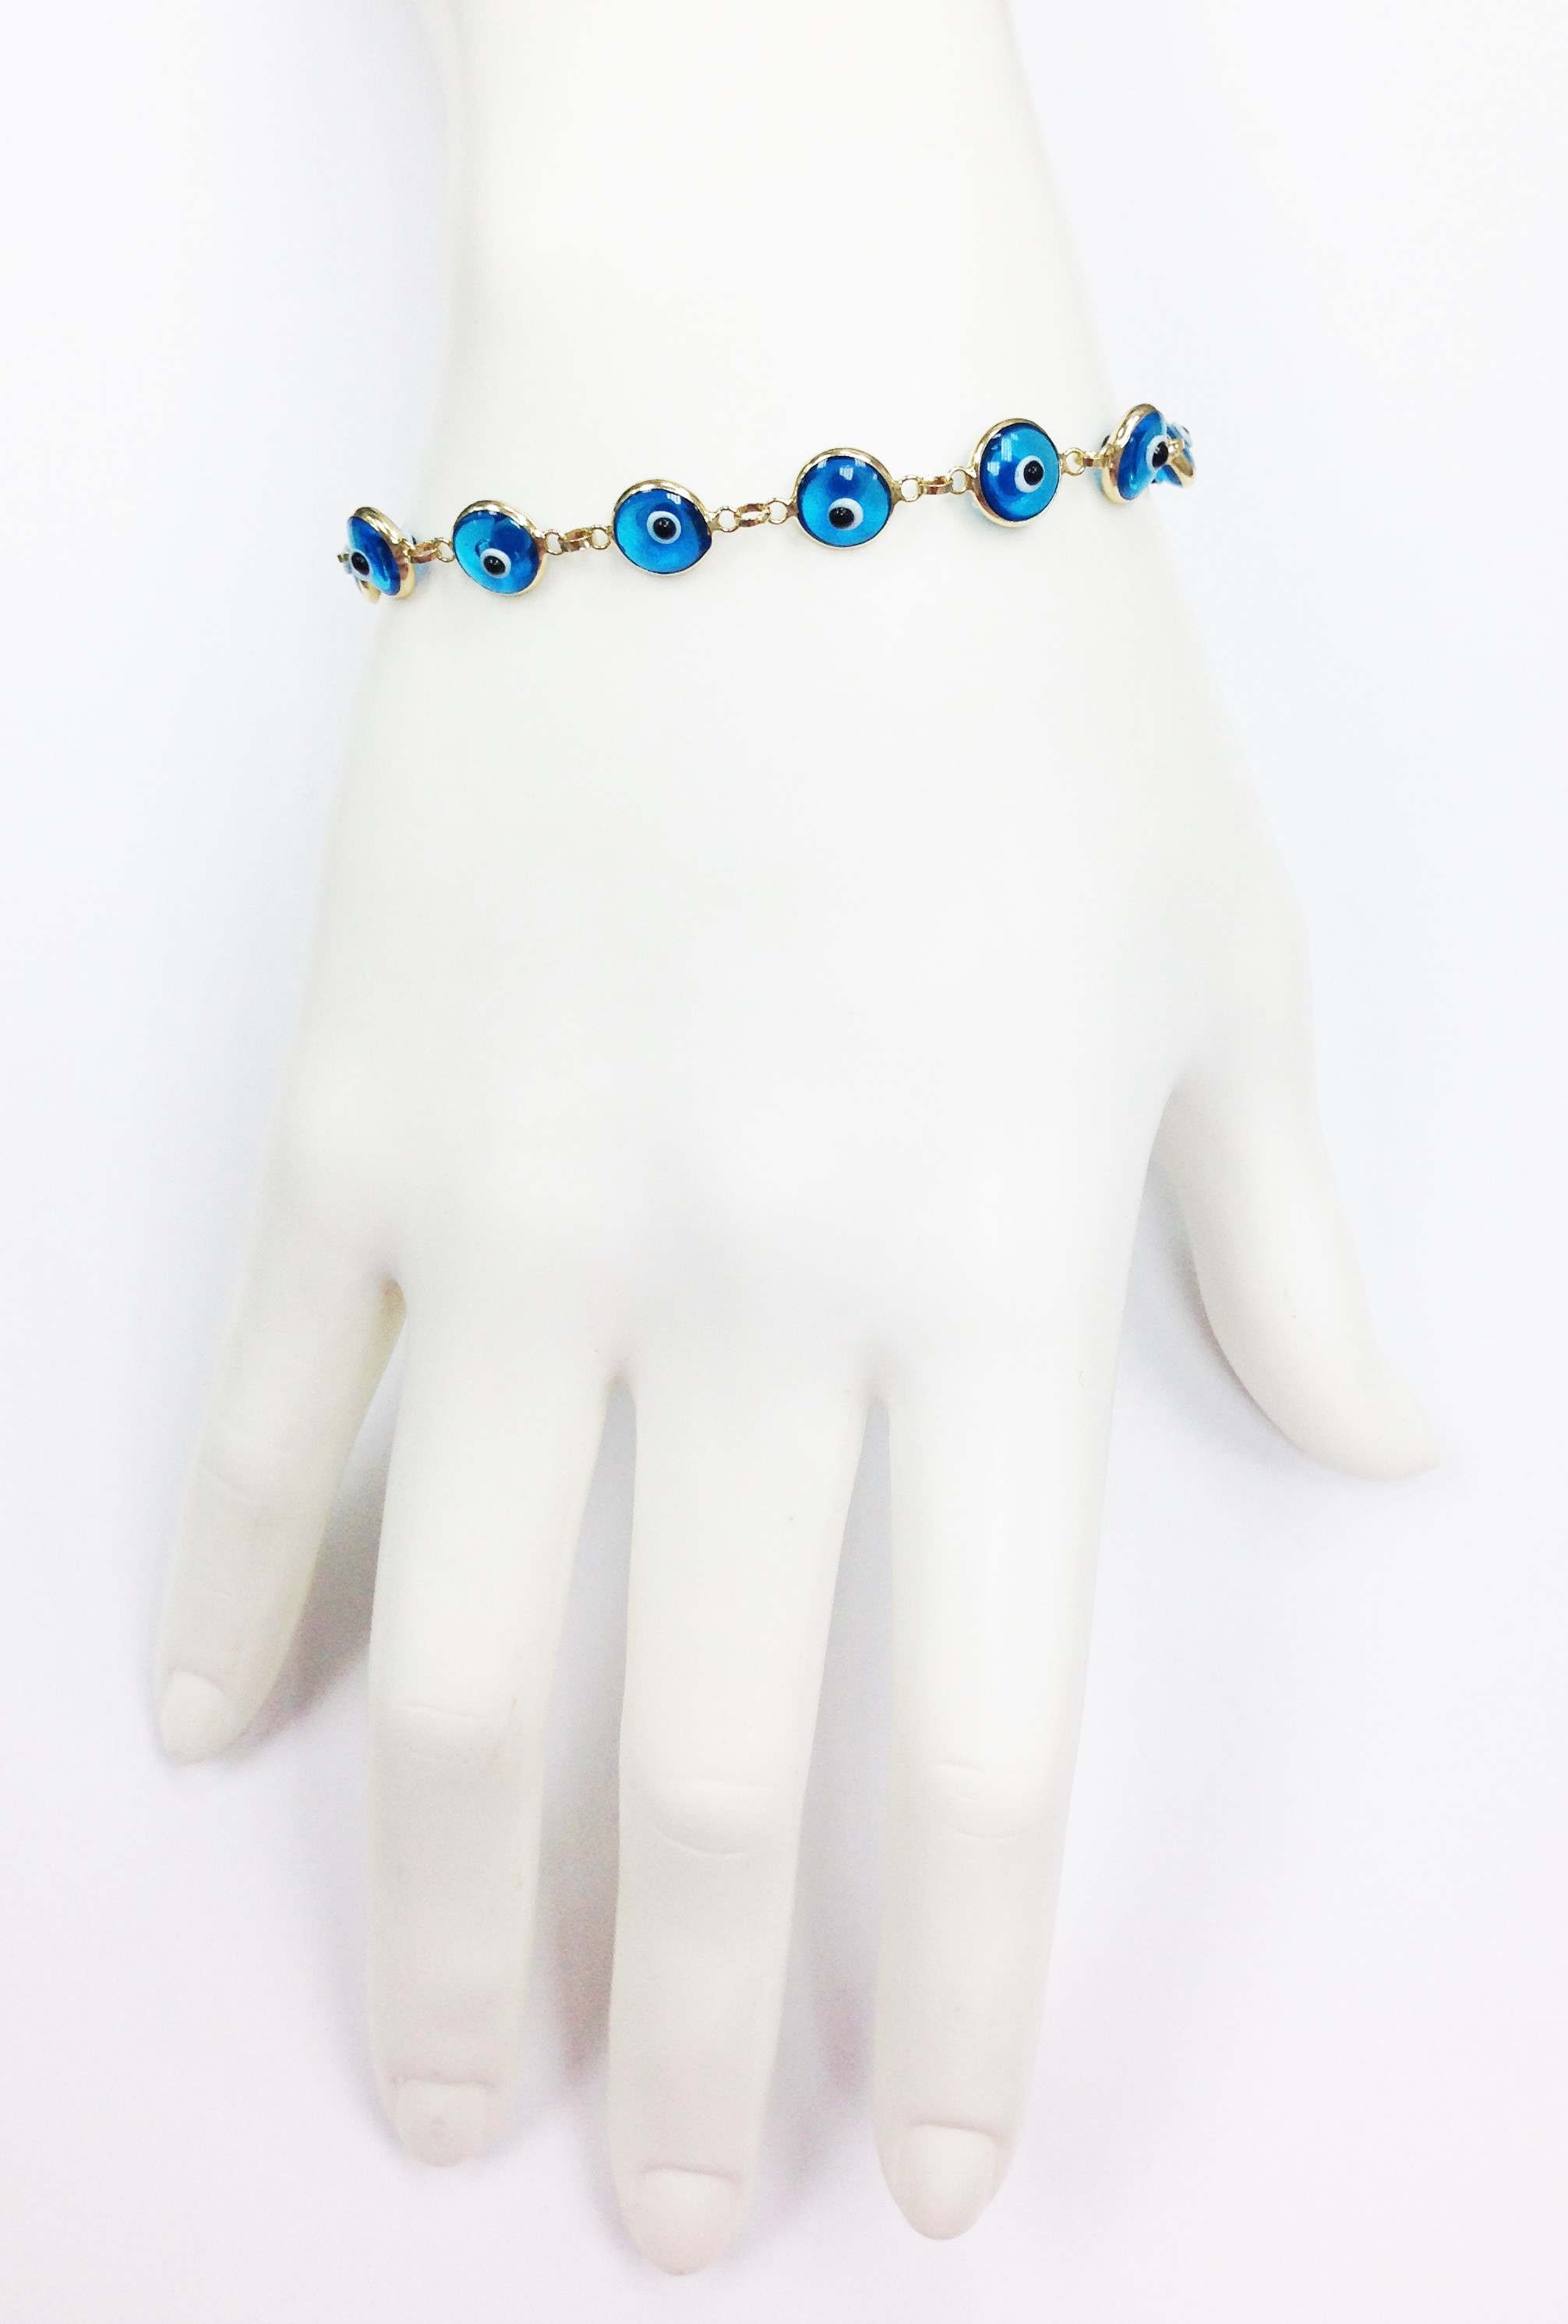 14K YELLOW GOLD TURQUOISE EVIL EYE BRACELET (7.5 INCHES) by